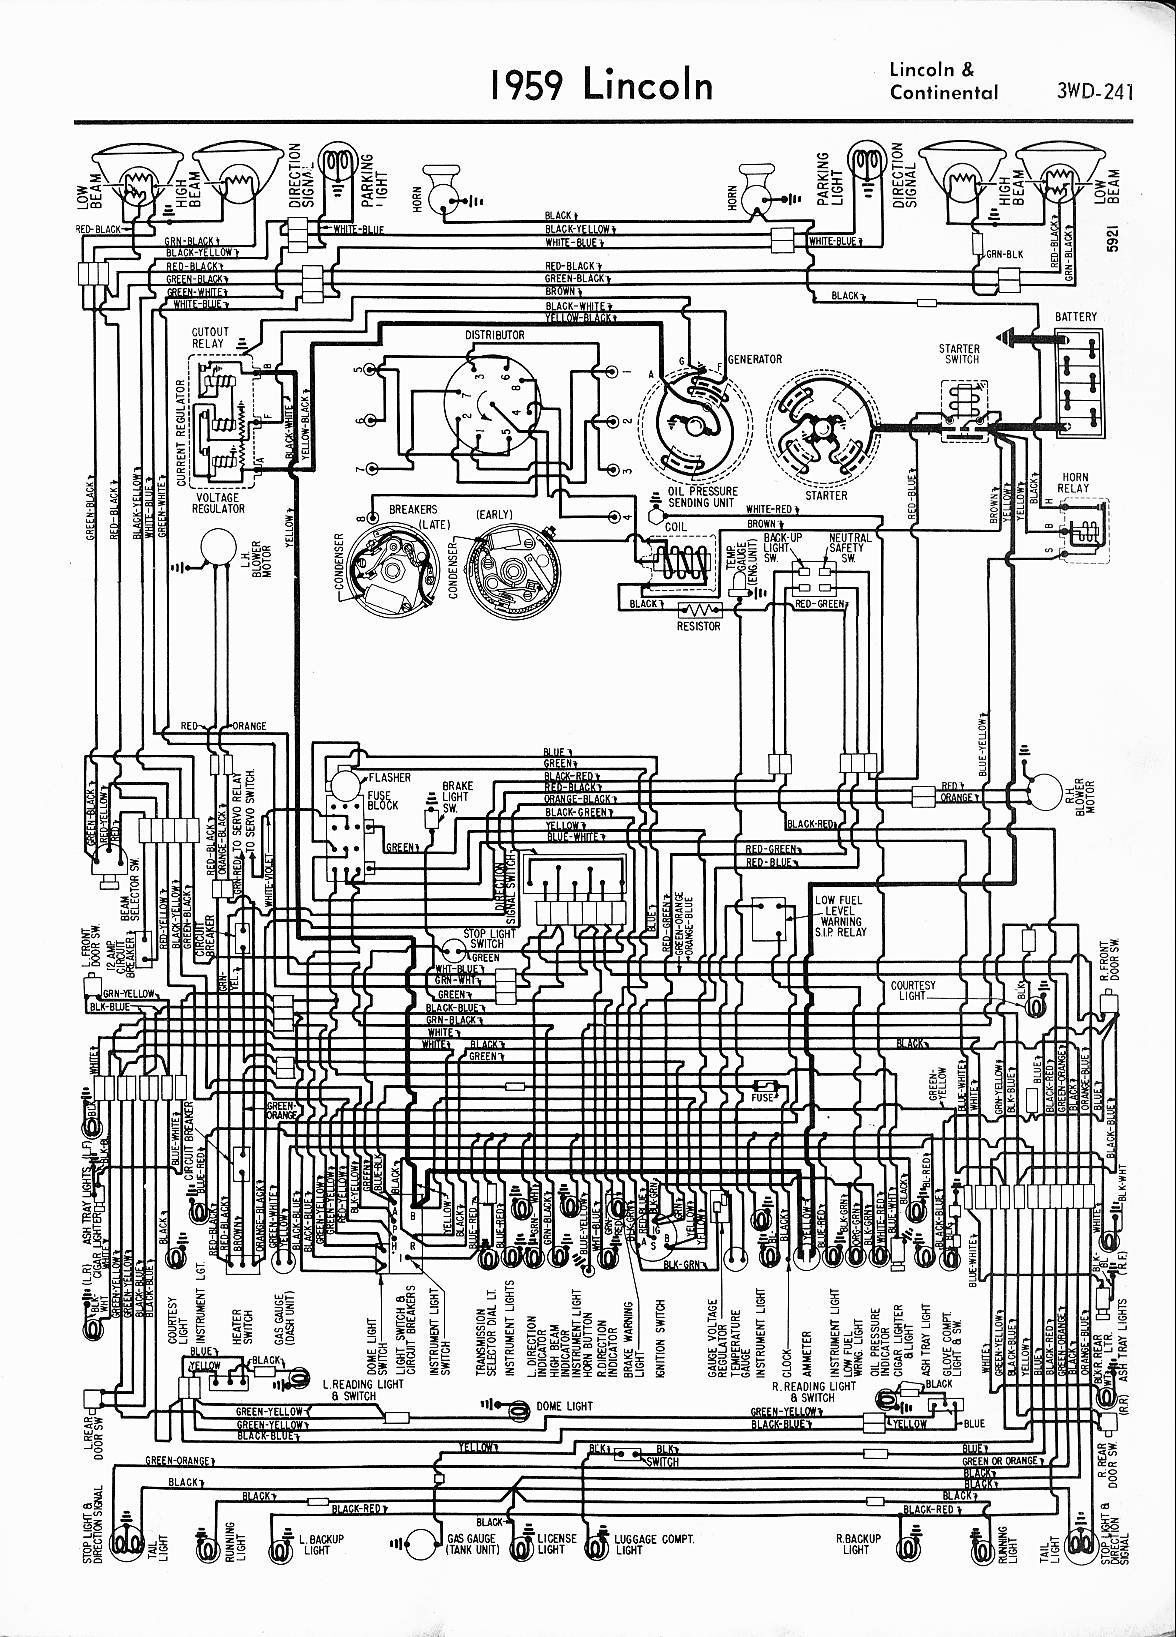 72 ford f100 dash wiring diagram coleman pop up camper 1966 chevy truck harness schematic library headlight best